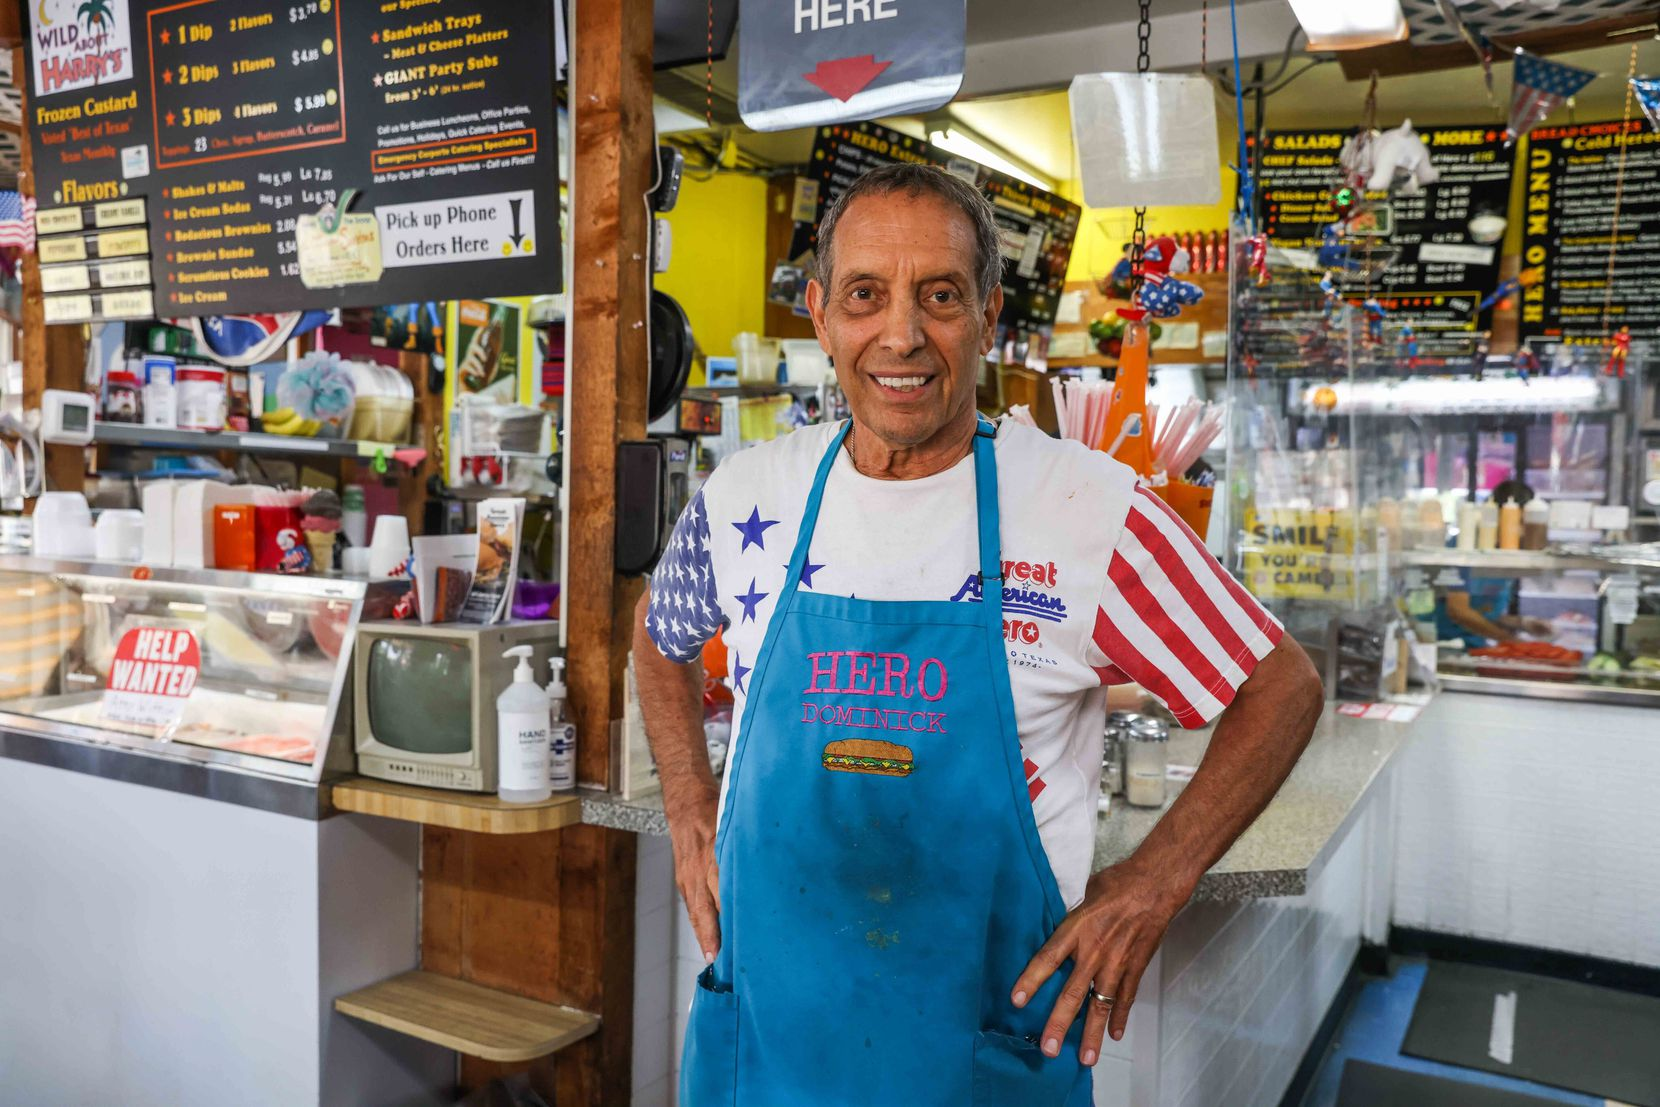 Dominick Oliverie poses at his sandwich shop, the Great American Hero in Dallas on Saturday, July 31, 2021. The shop is closing after 47 years.